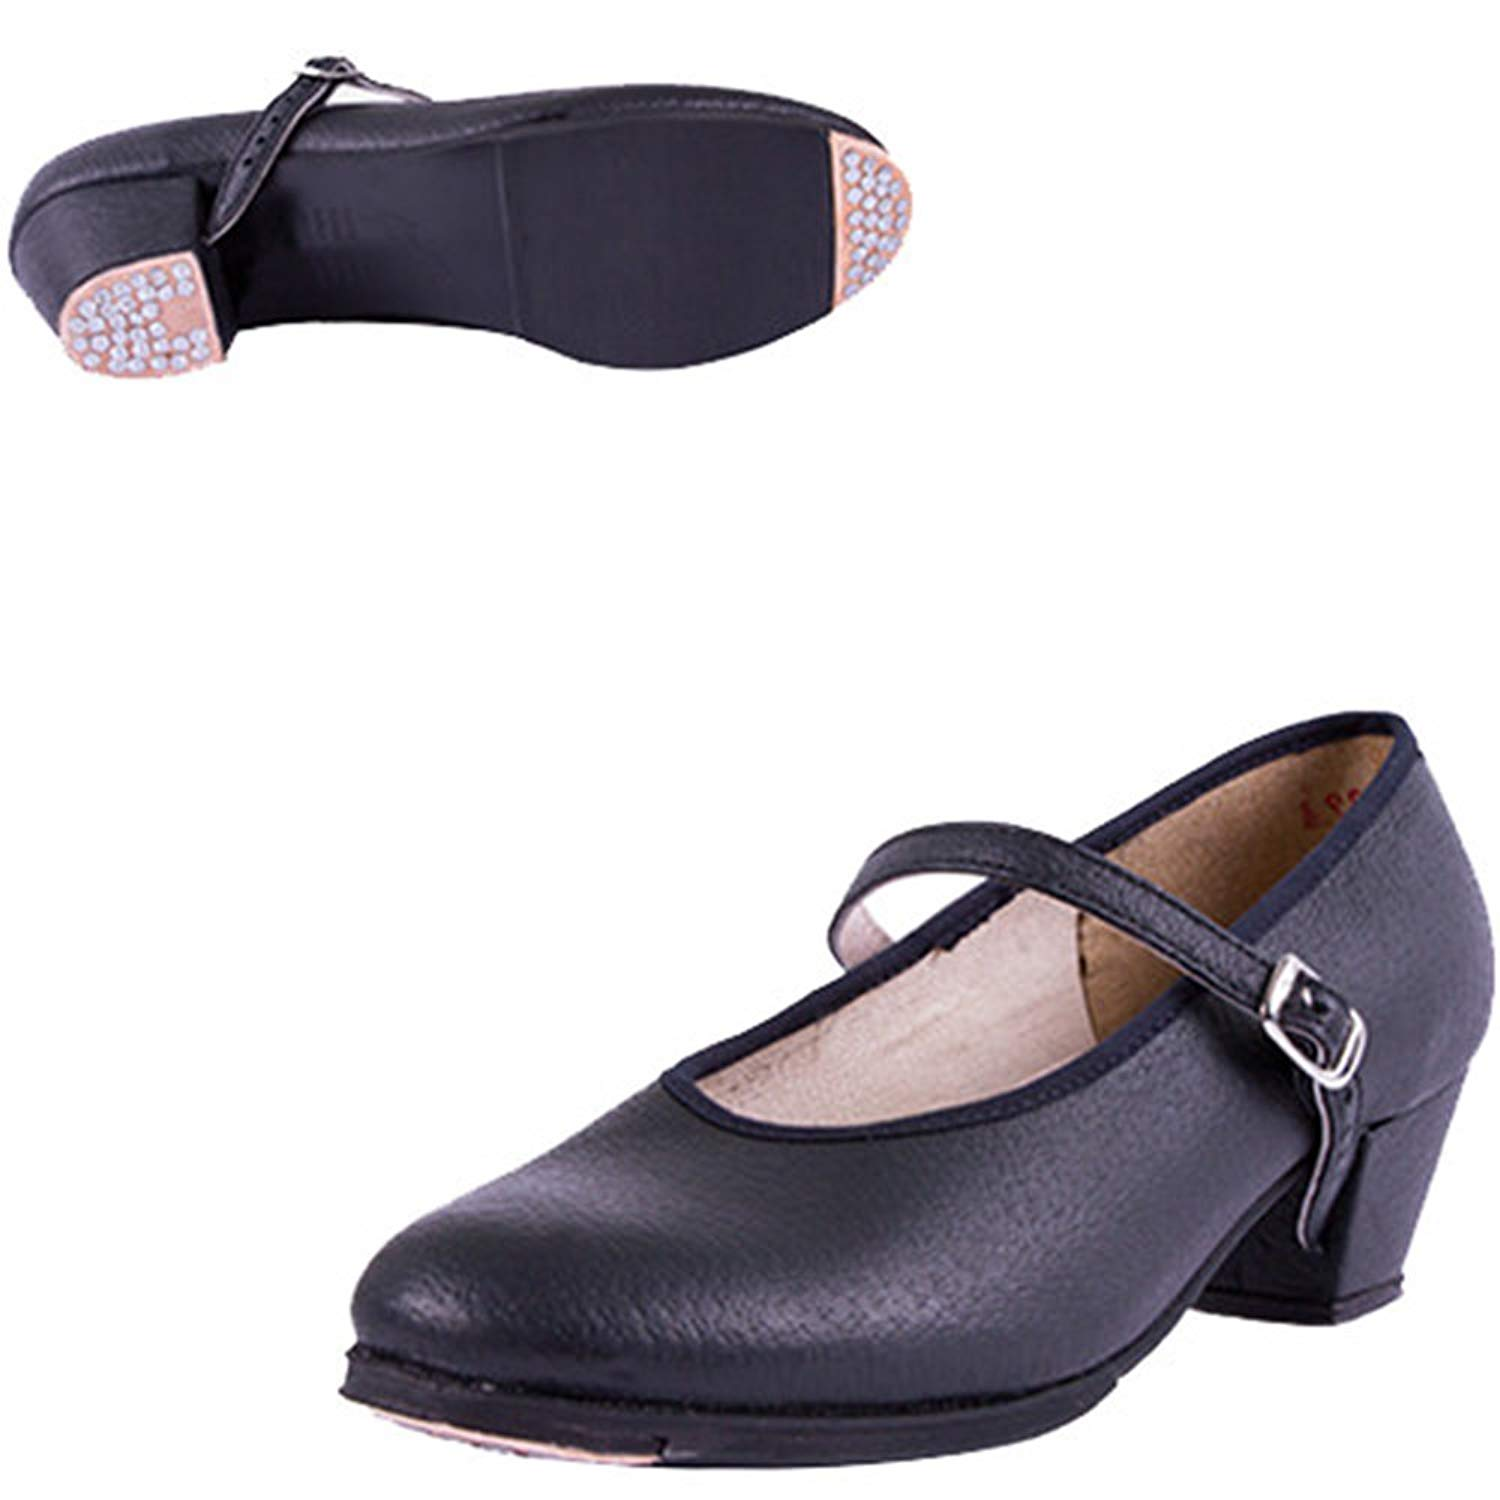 Cheap Folklorico Shoes, find Folklorico